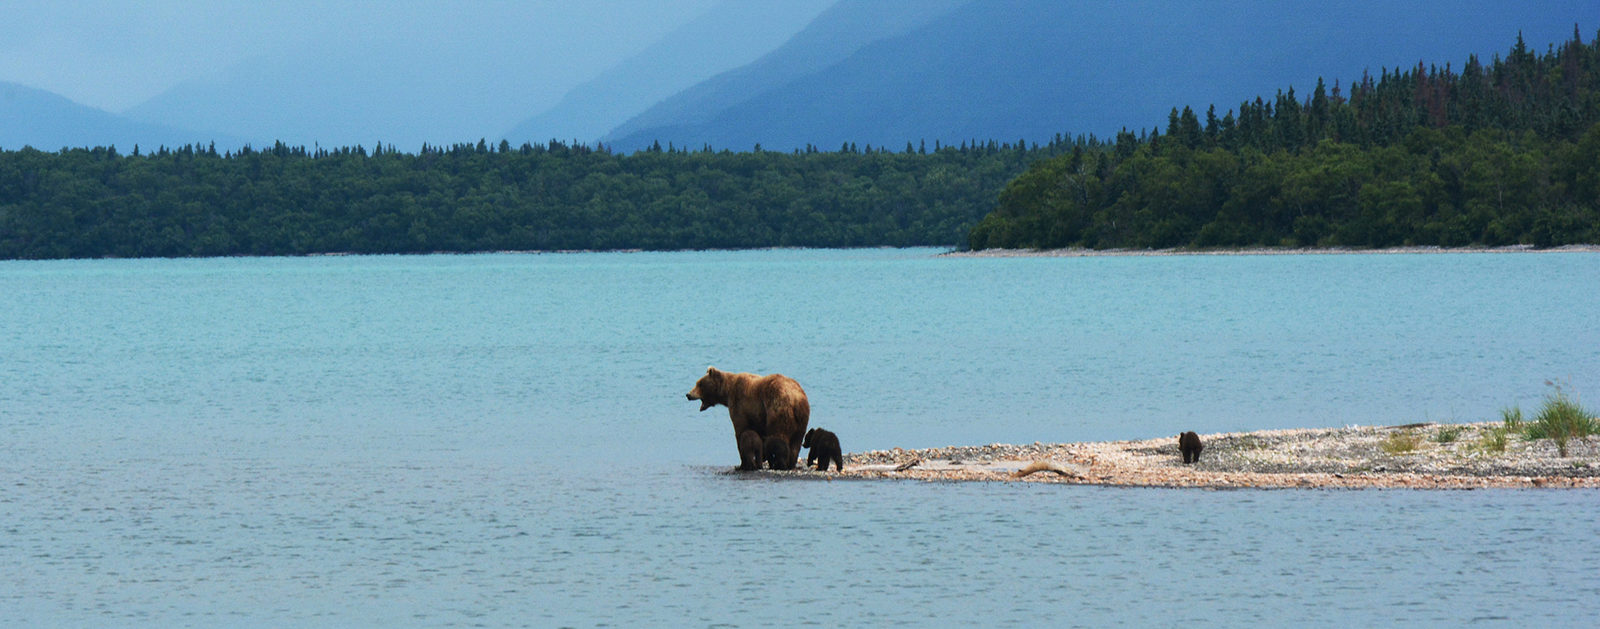 Grizzly bears on Naknek Lake in Katmai National Park. | Photo: Paxzon Woelber, Cinders to Sea Expedition